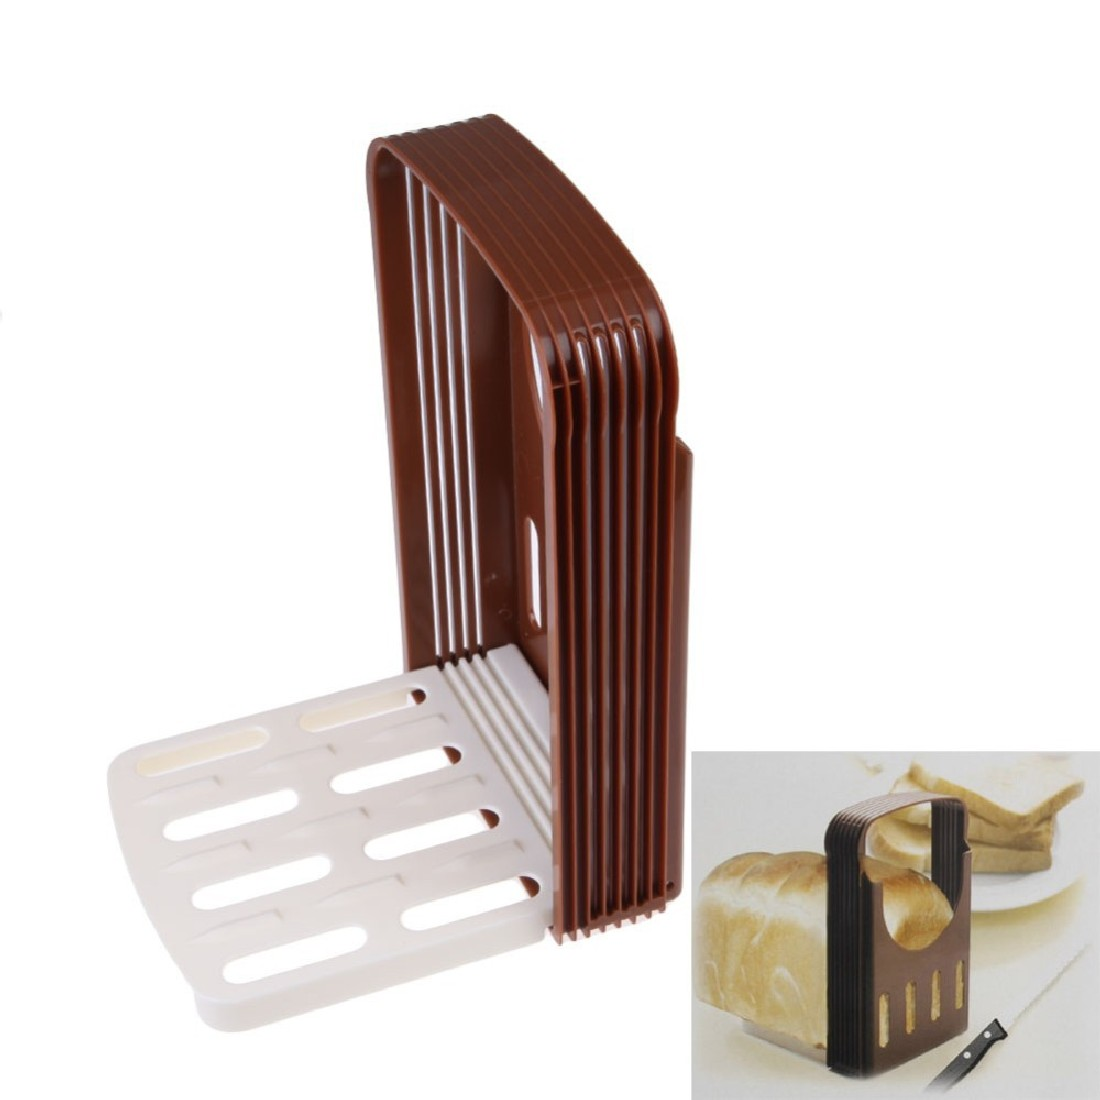 Bread Cutter as Kitchen Accessories for Slicing Bread in Uniform Size